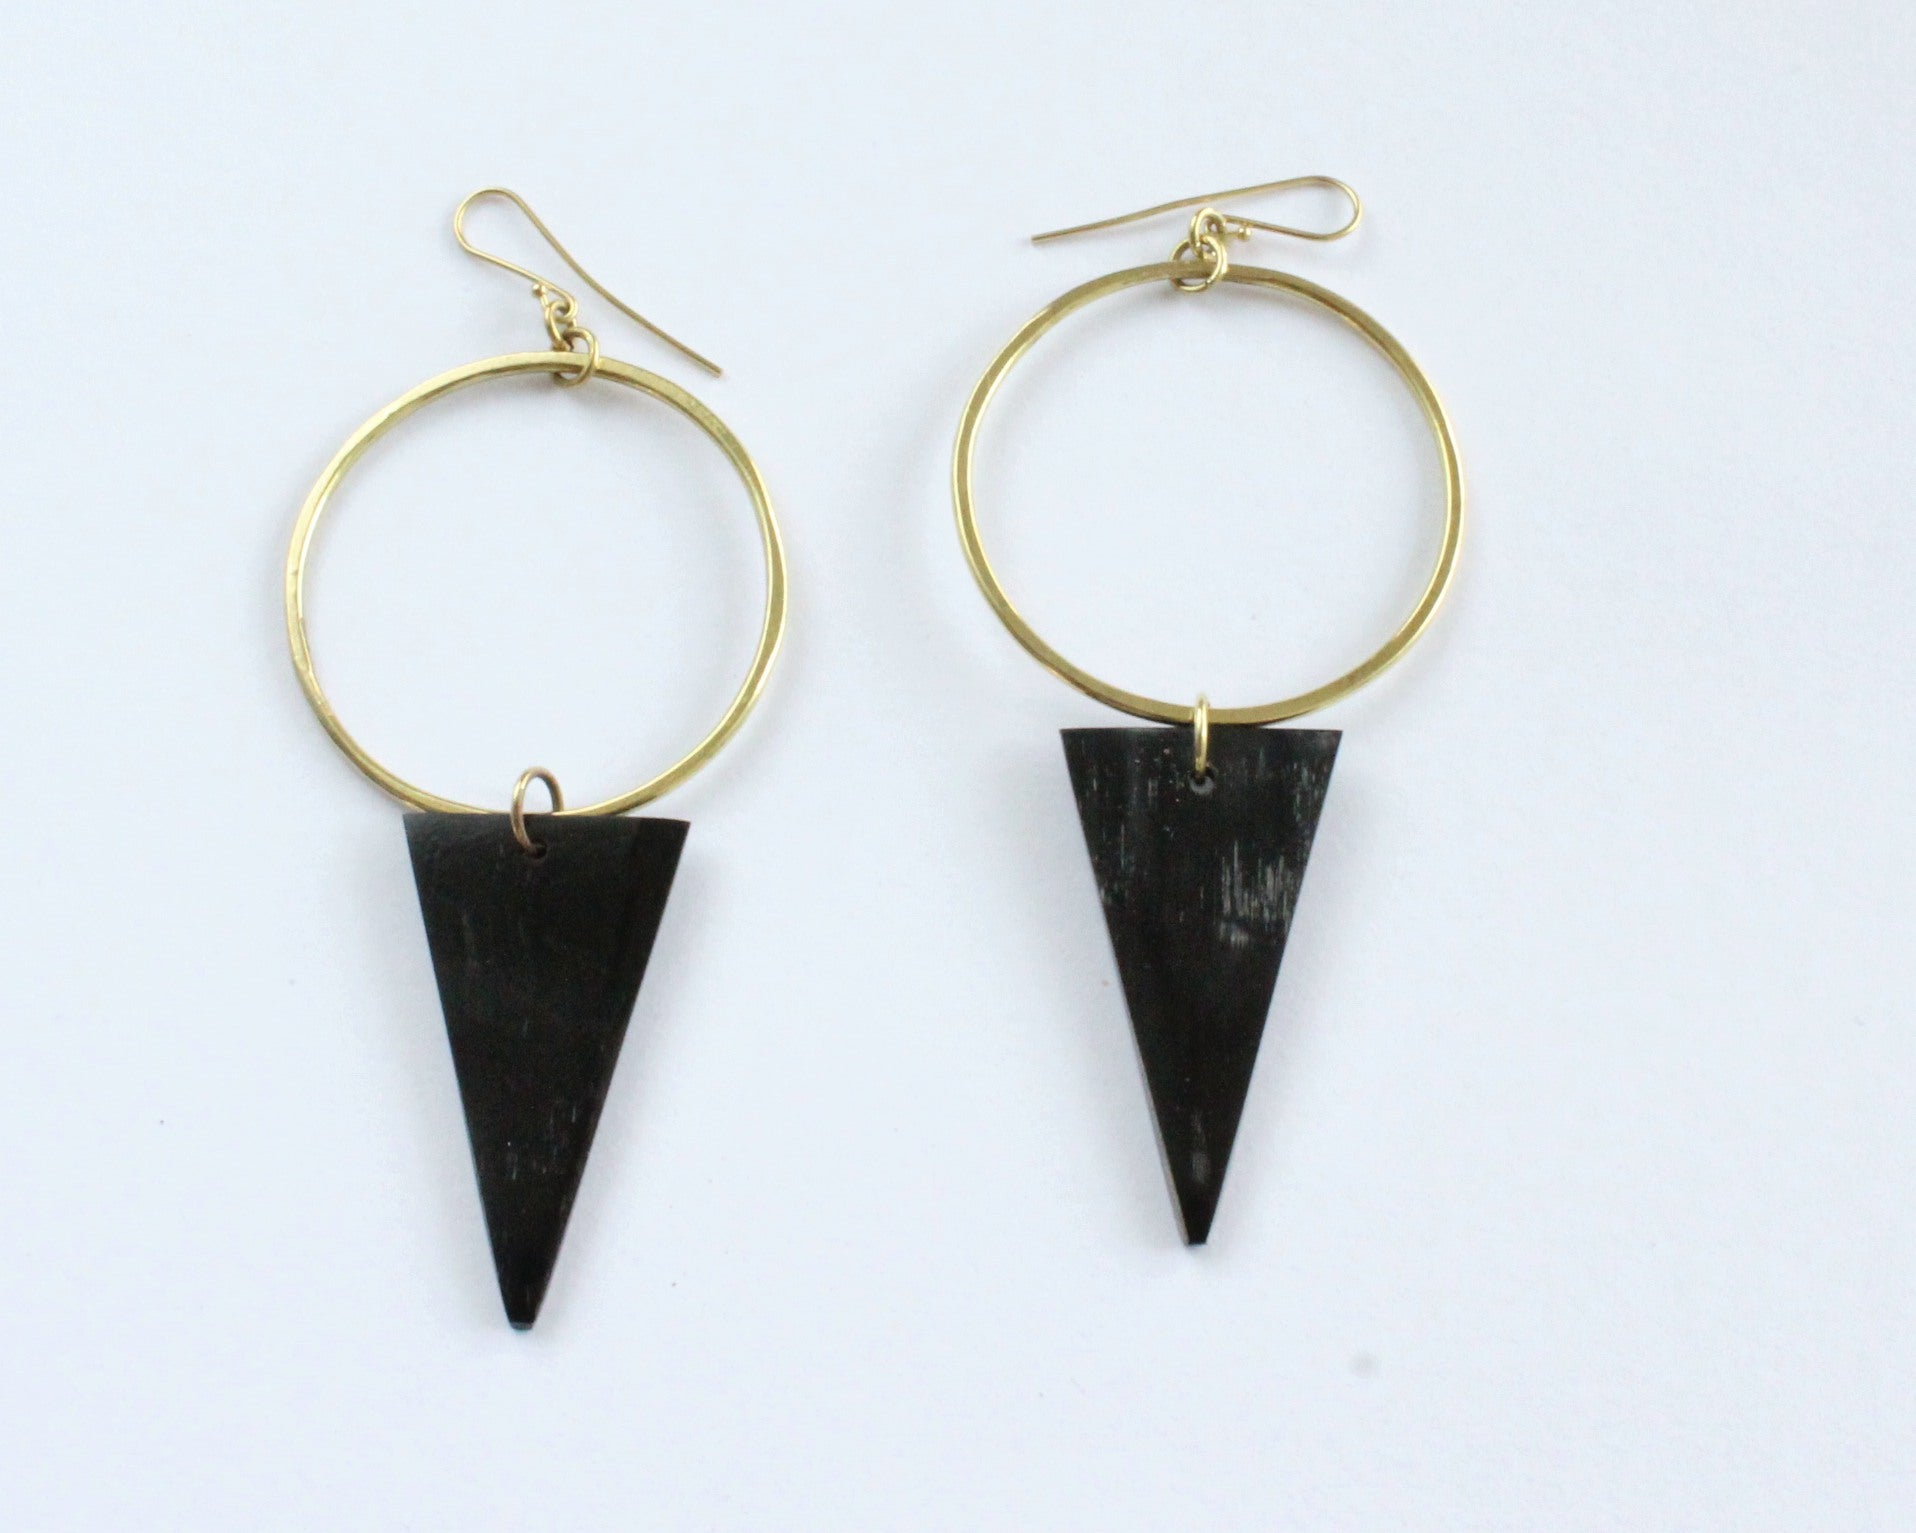 Handmade earrings, brass, black, horn, recycled, upcycled, African, triangle and hoop